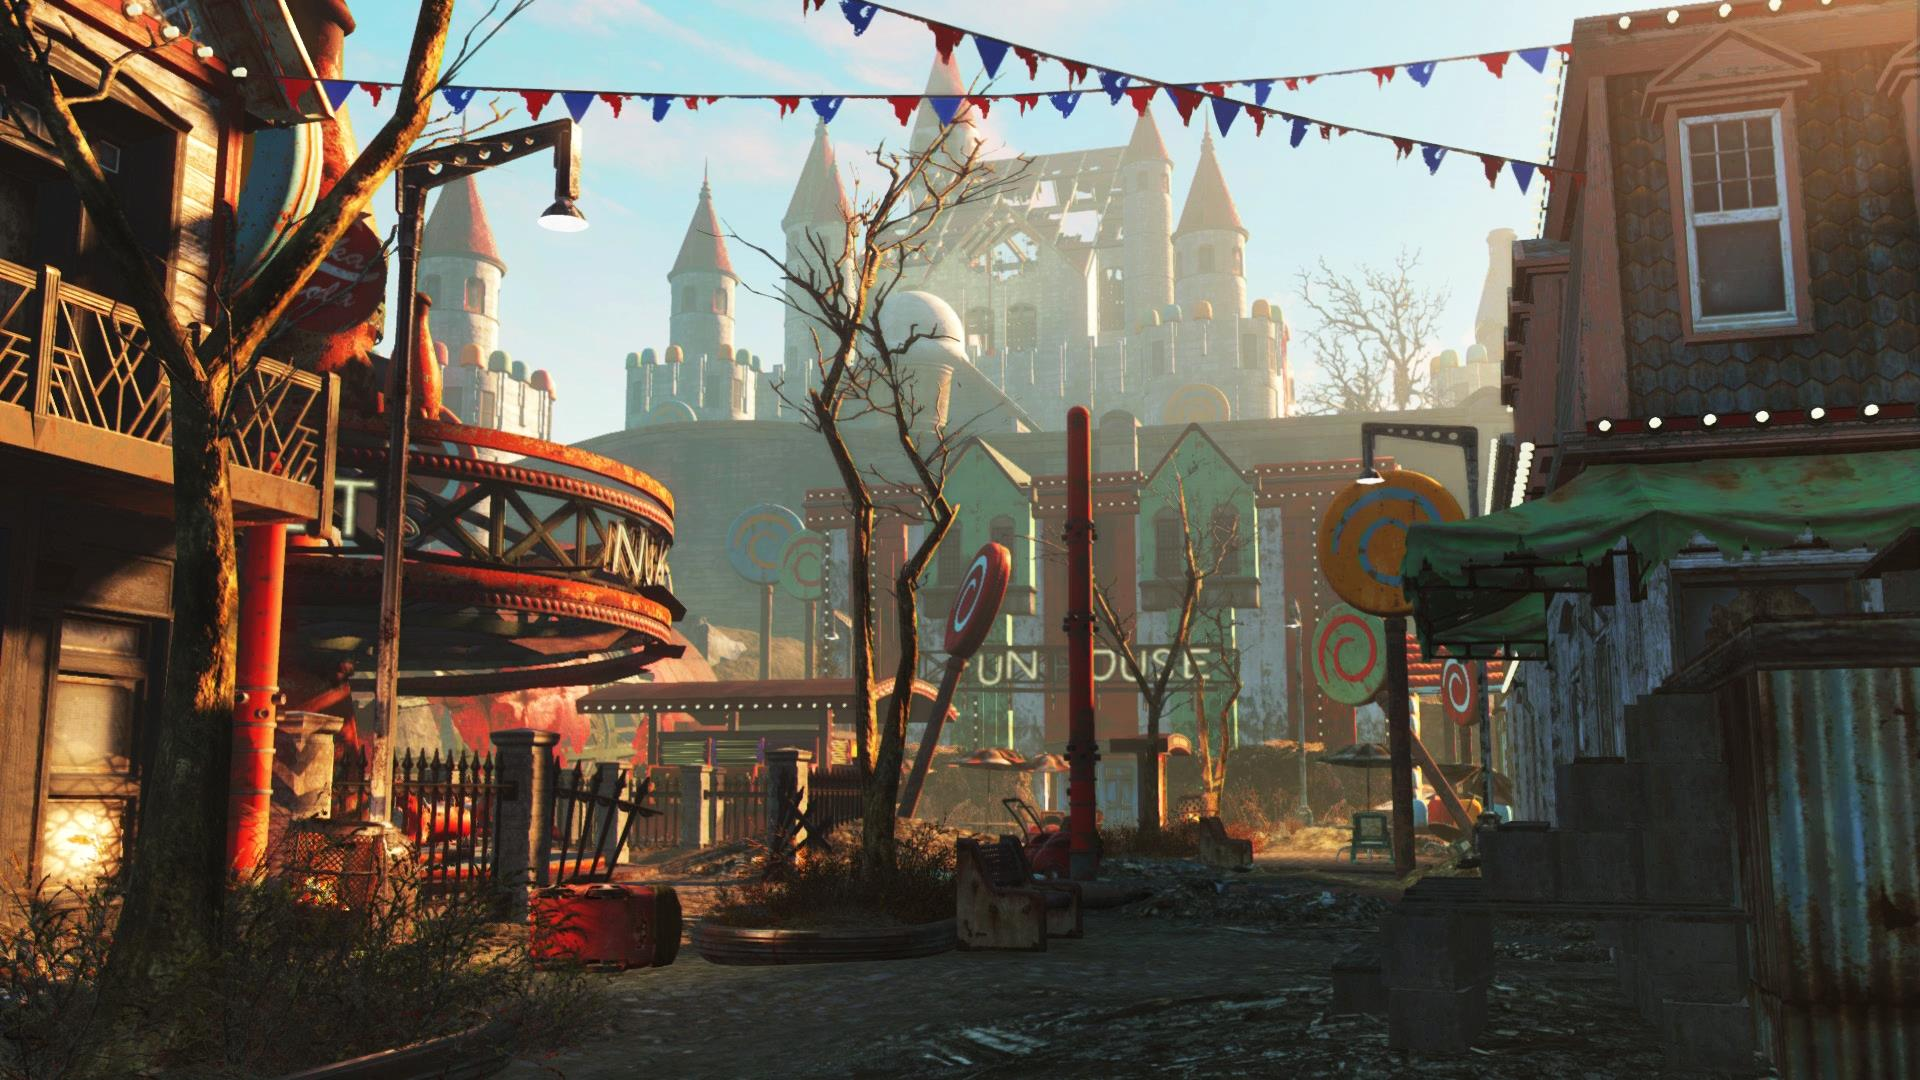 Fo4 Nuka World Map.Fallout 4 Nuka World Hidden Cappy Locations For The Cappy In A